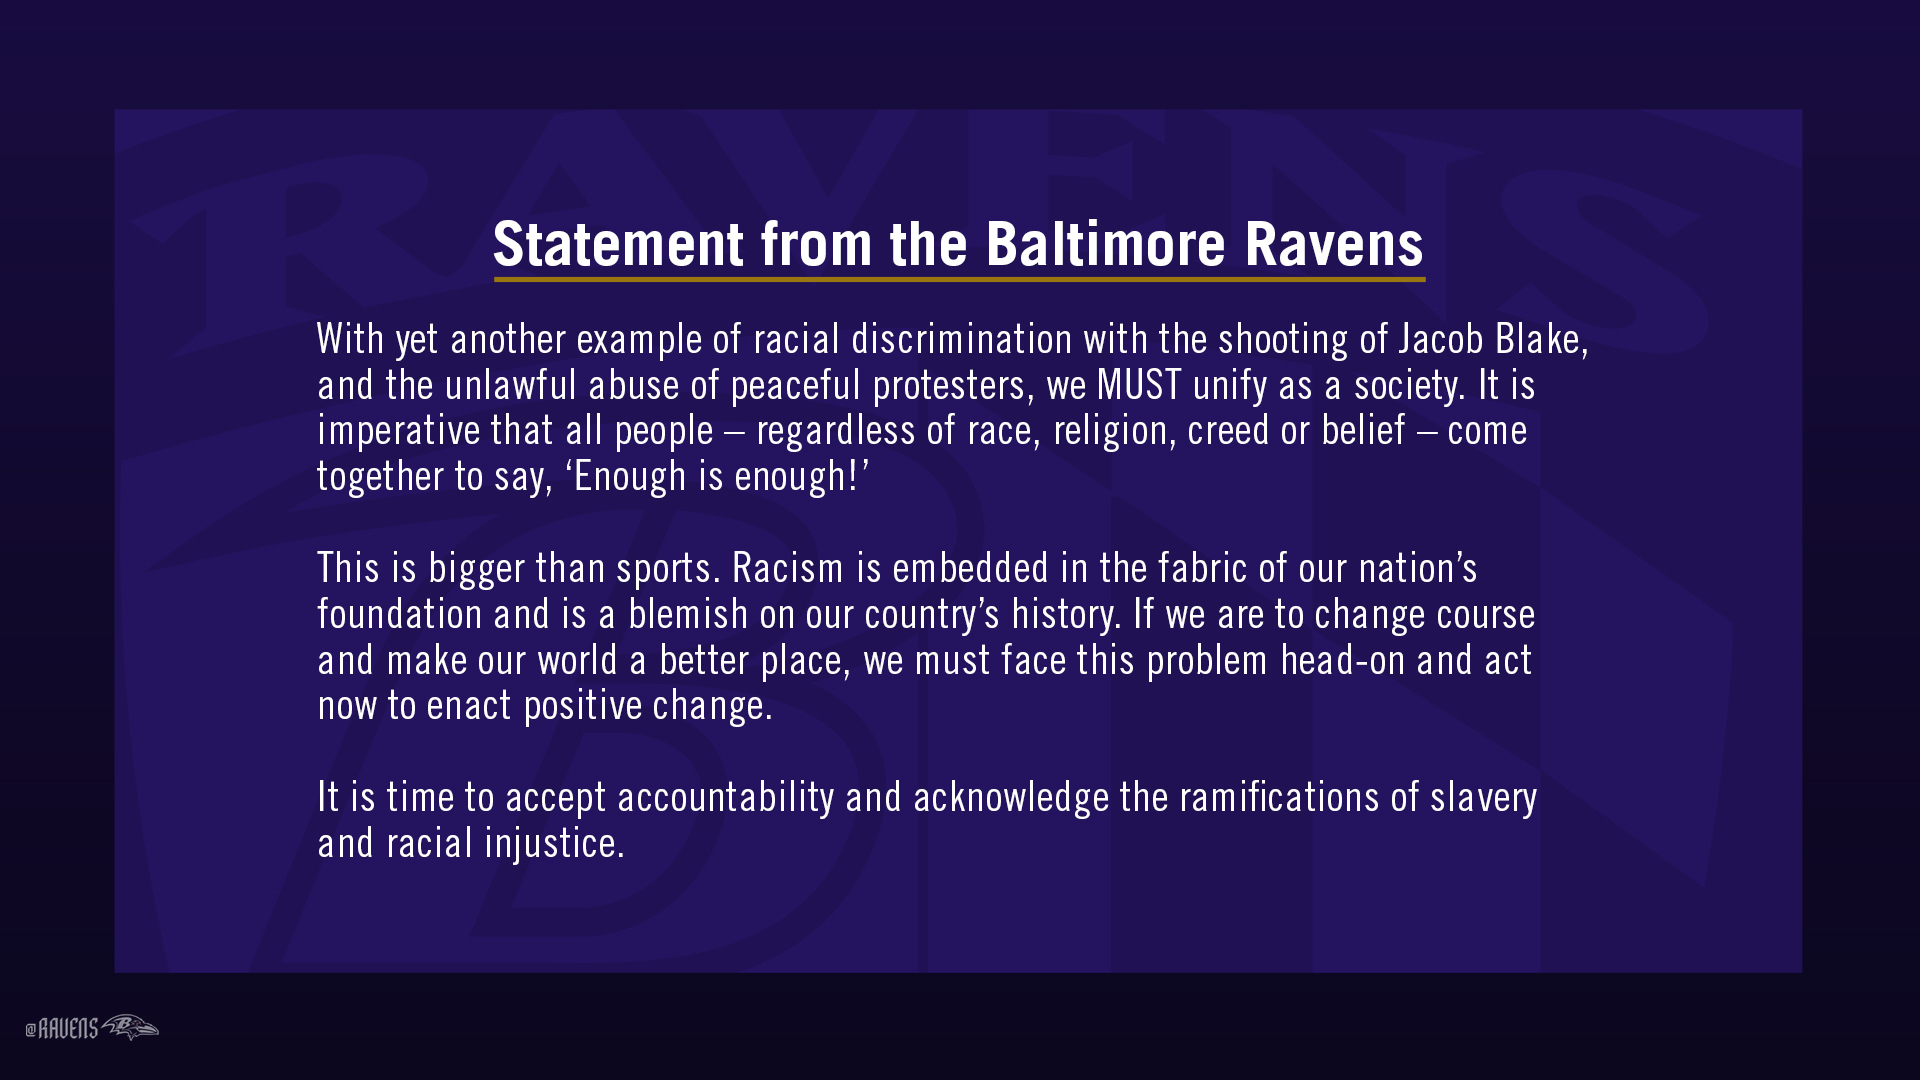 Baltimore Ravens On Twitter Statement From The Baltimore Ravens